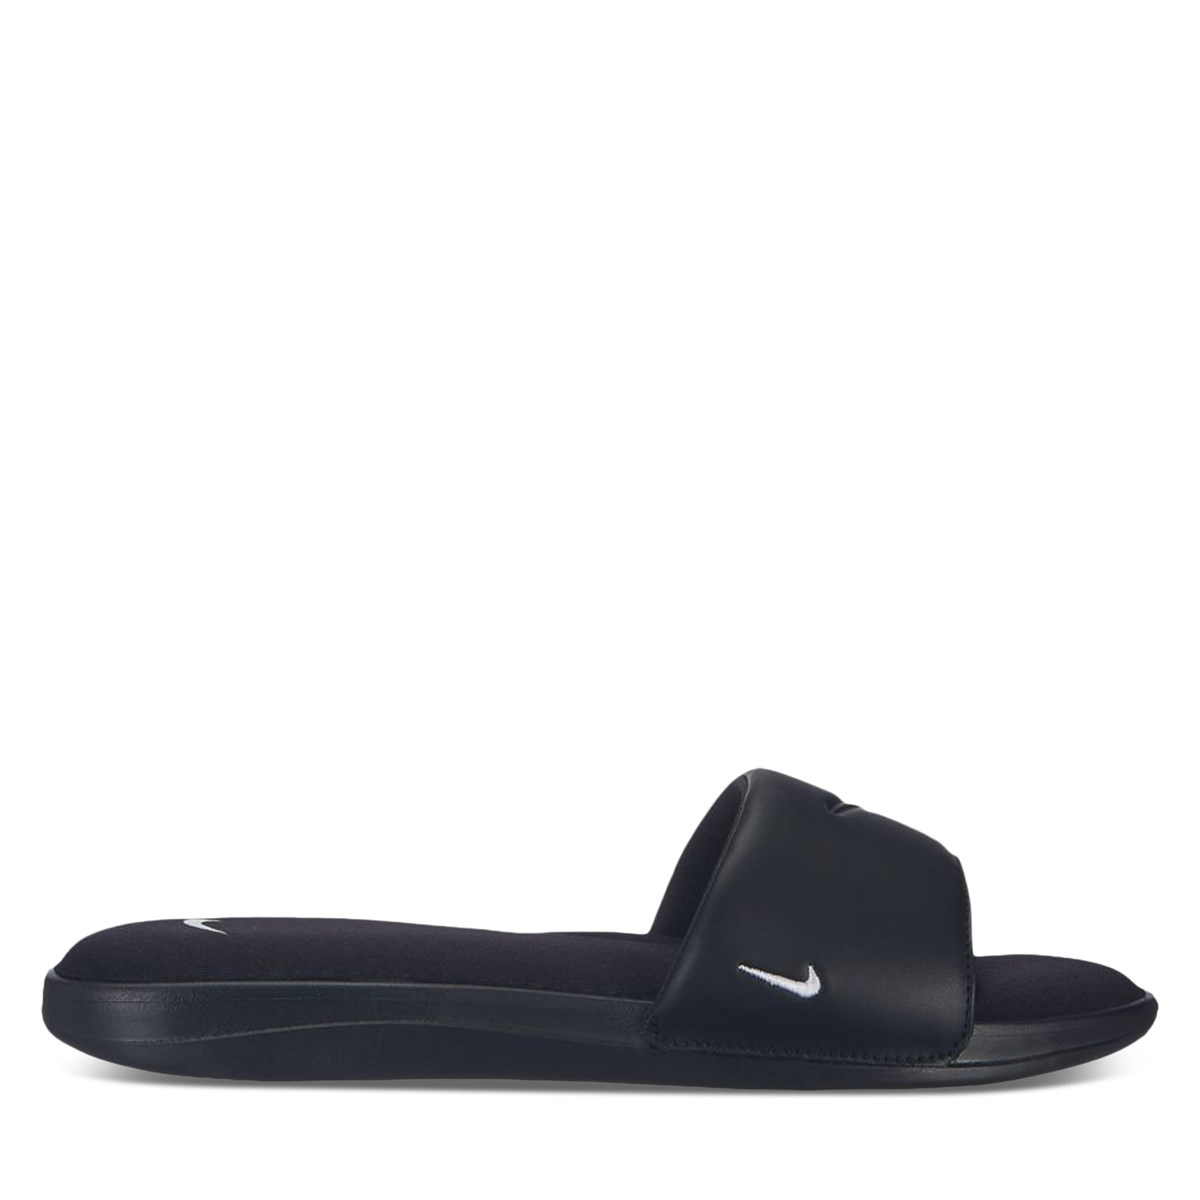 Women's Ultra Comfort 3 Slides in Black